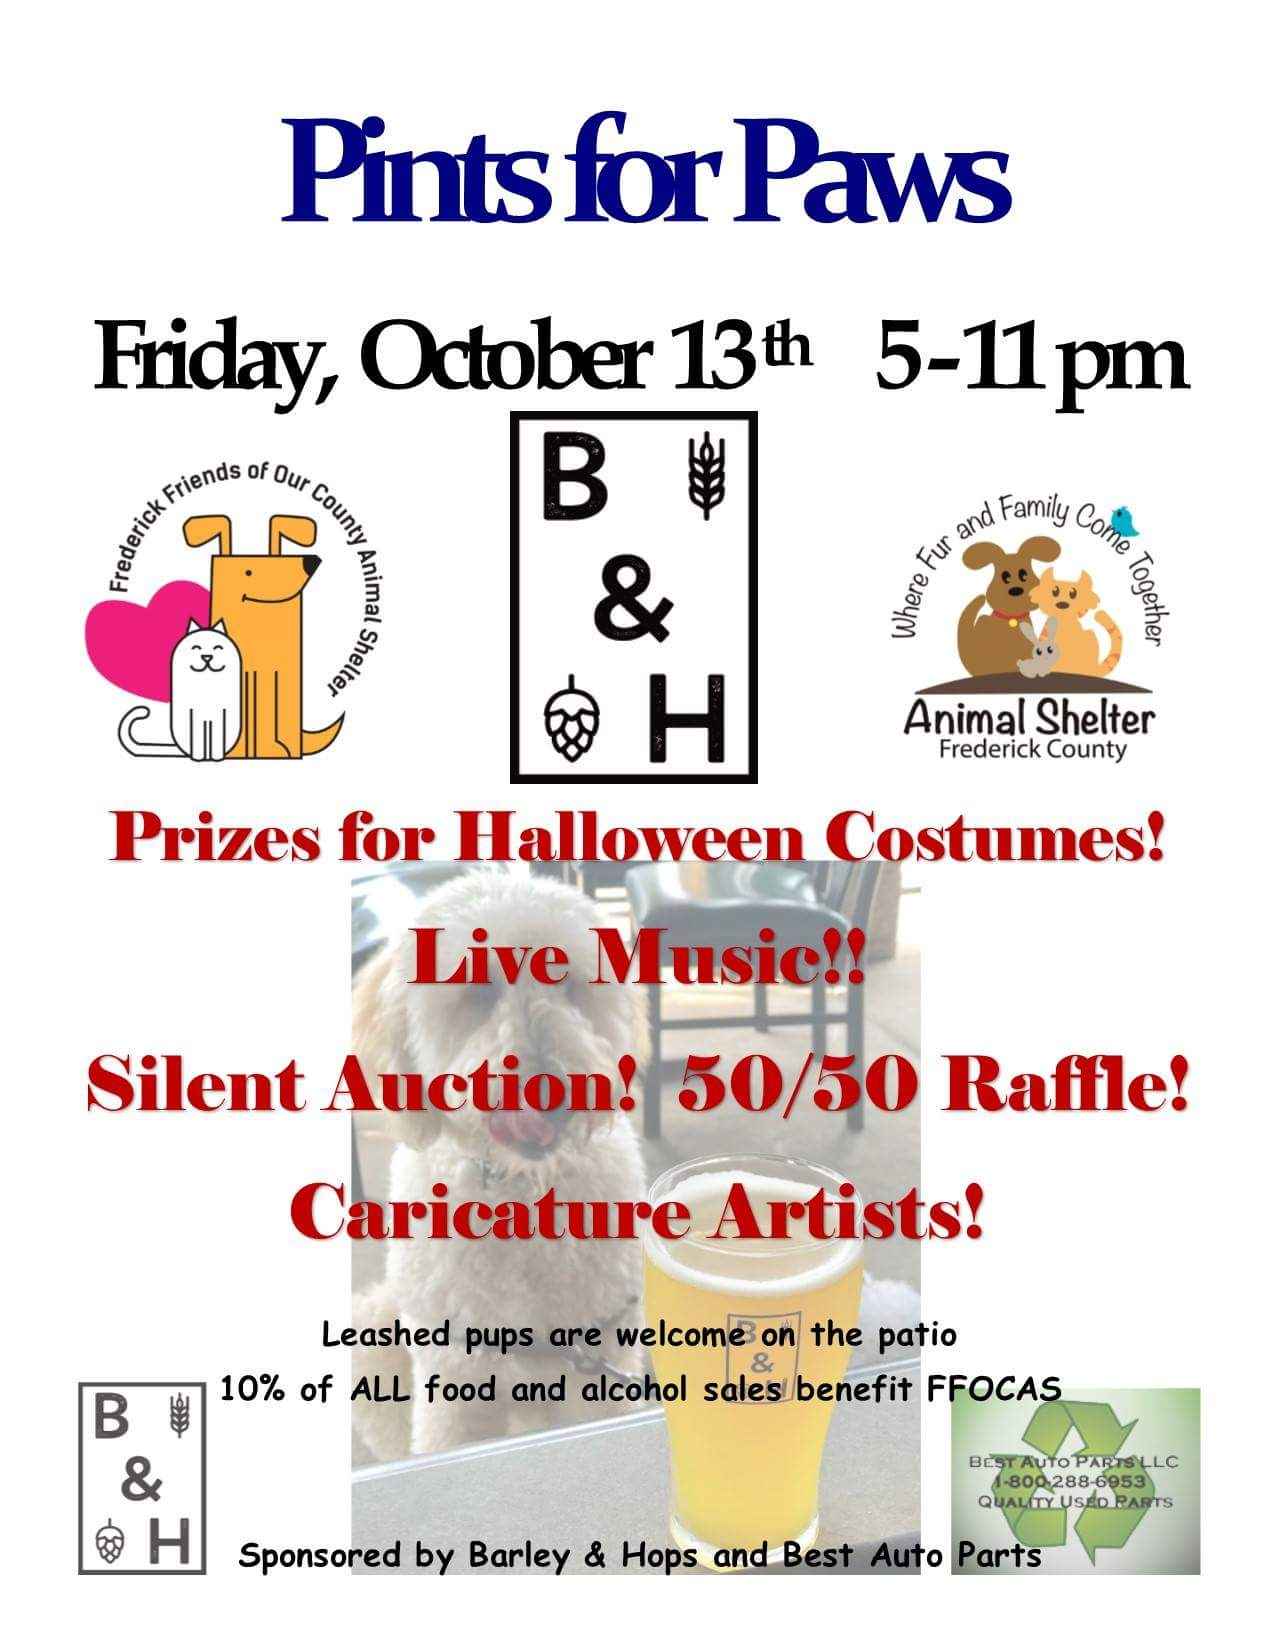 Pints for Paws Event